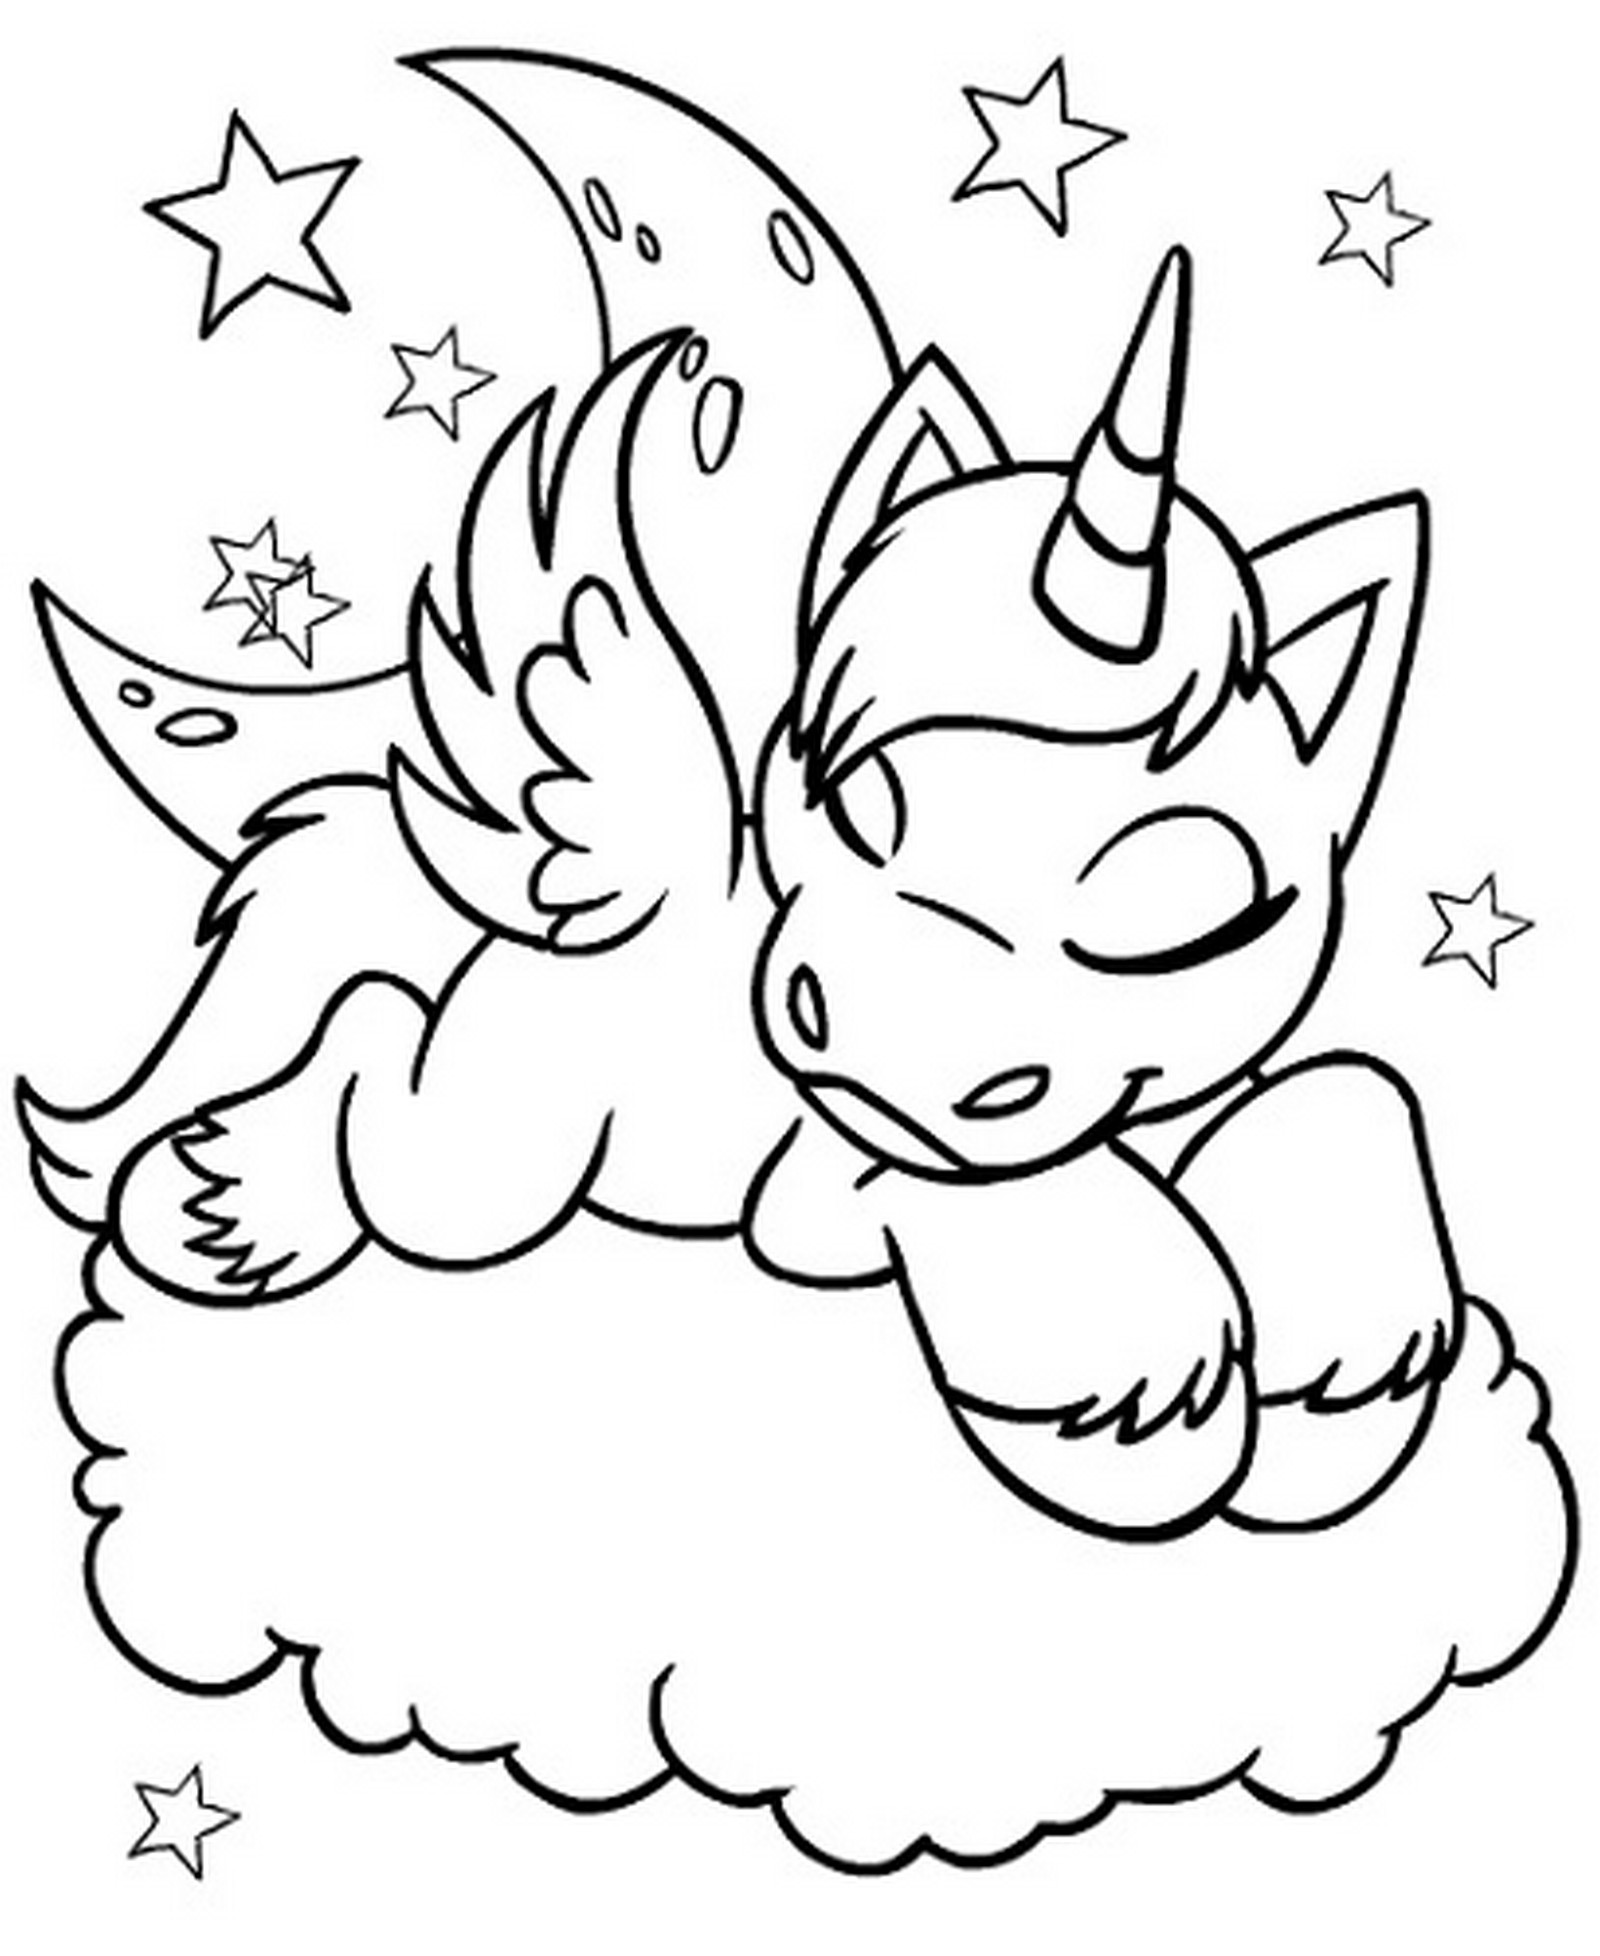 unicorn print out get this printable unicorn coloring pages 73400 out unicorn print